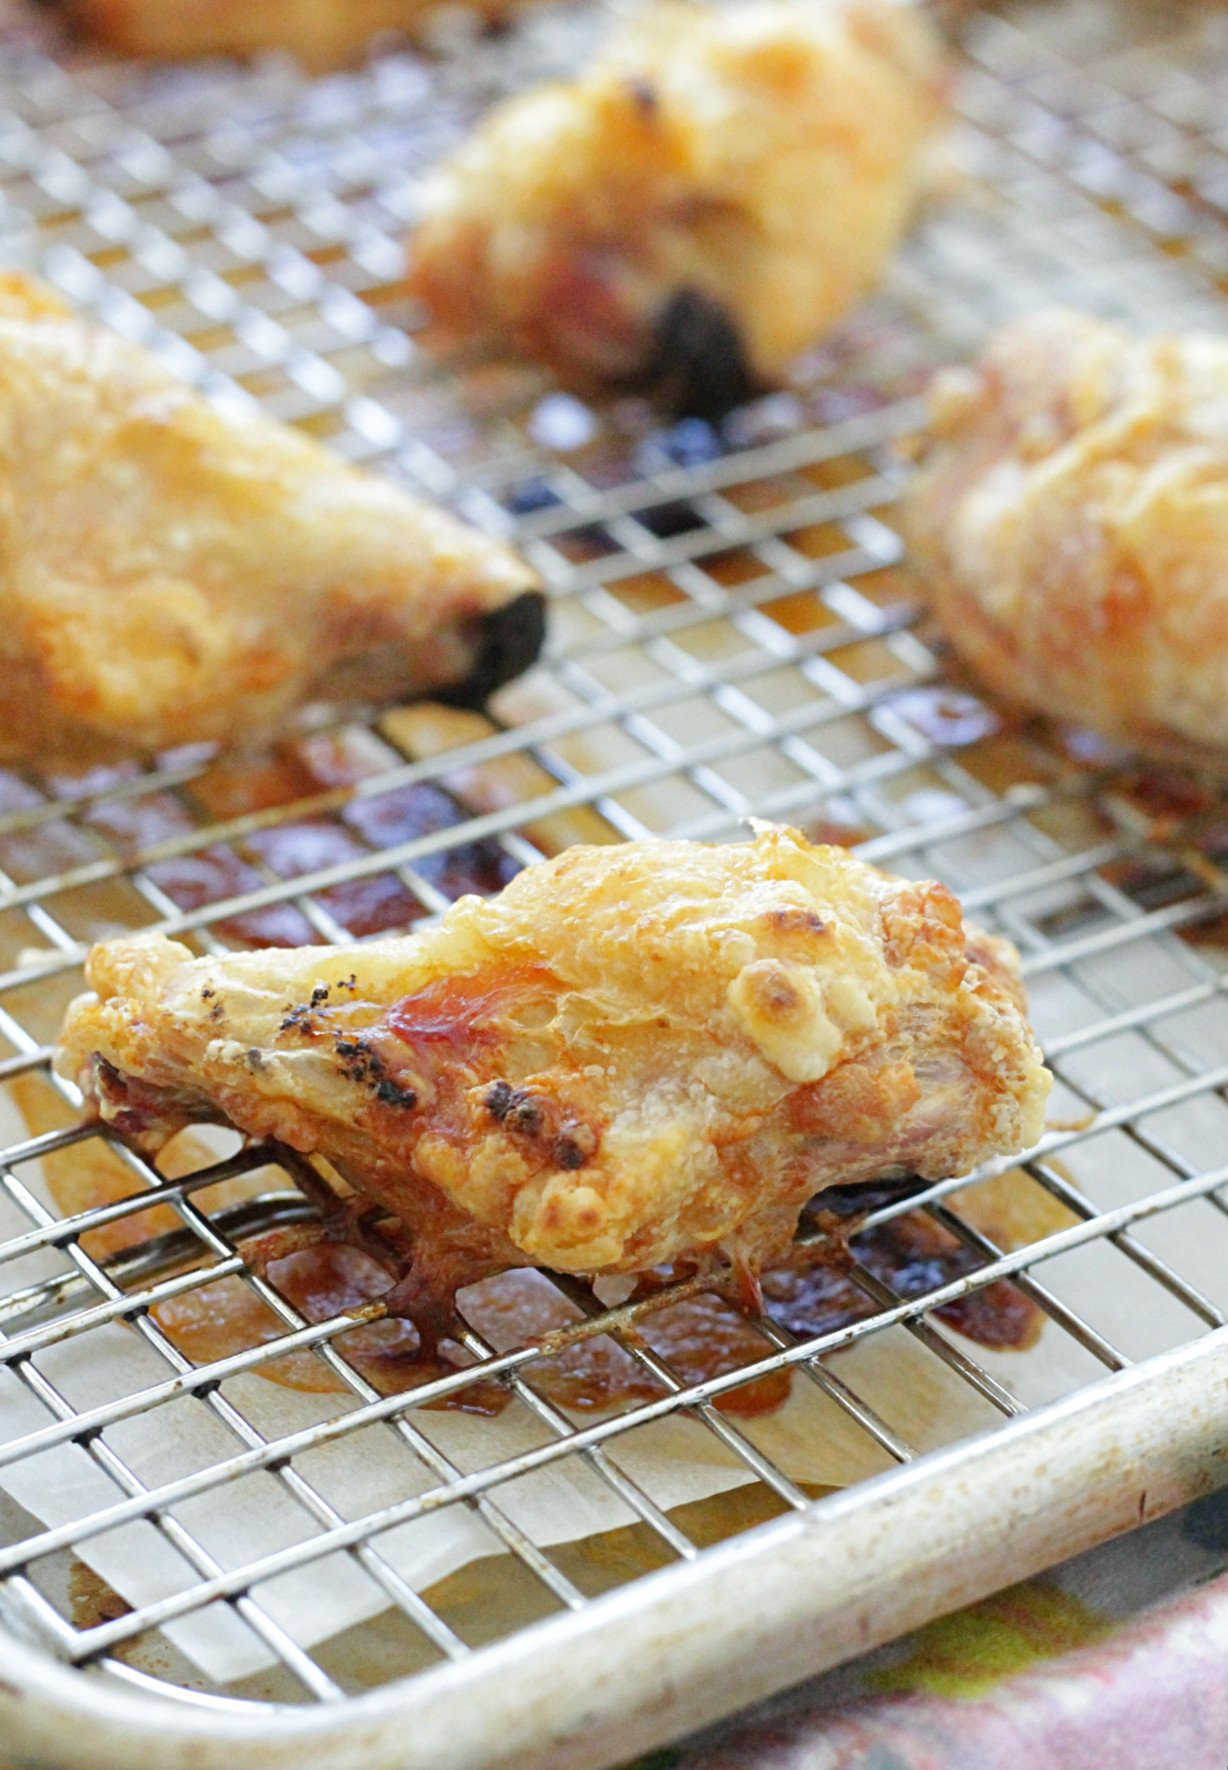 crispy baked chicken wings on sheet pan lined with baking rack showing how crisp the wings are after just being baked